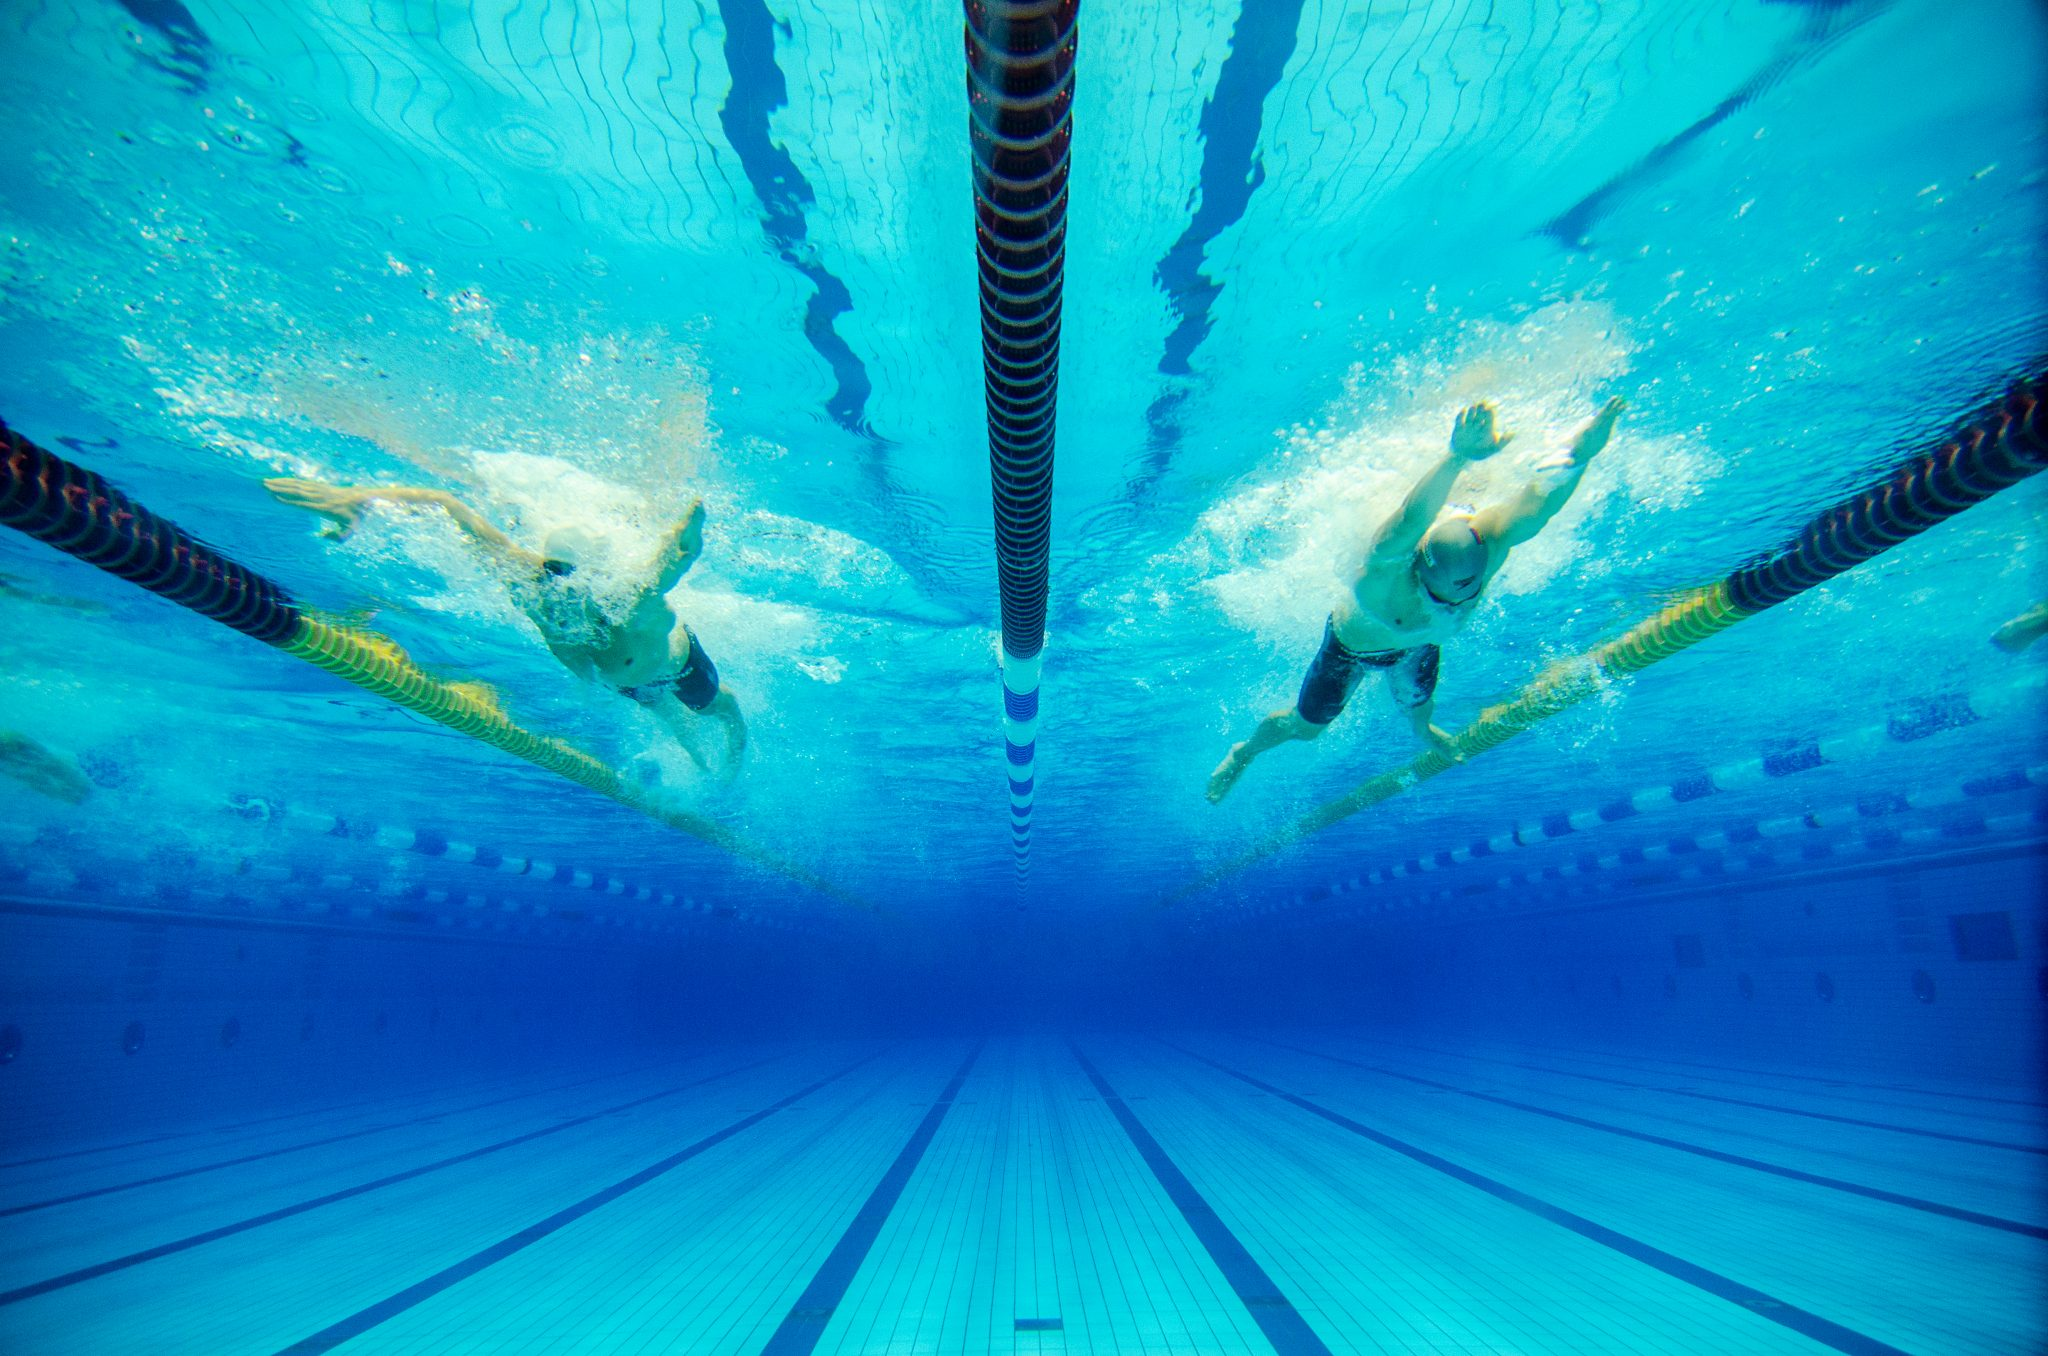 dynamic swimming competition in a blue pool